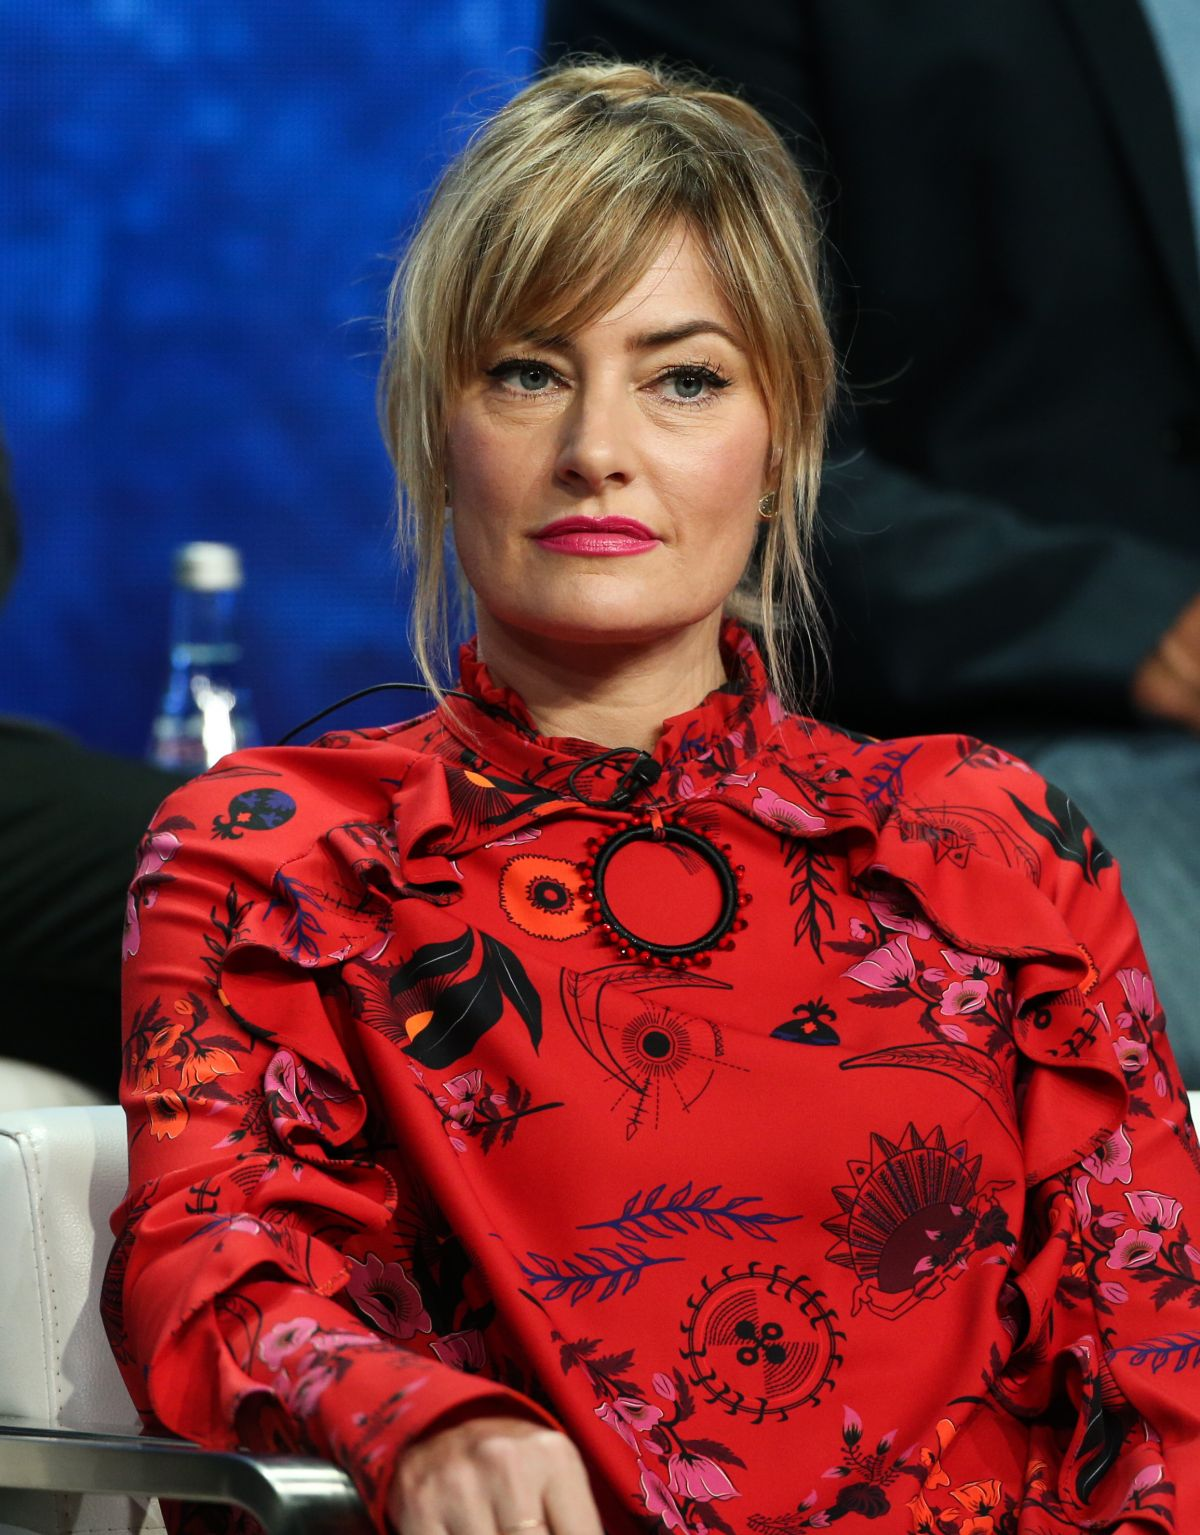 Forum on this topic: Tyra Misoux, madchen-amick/